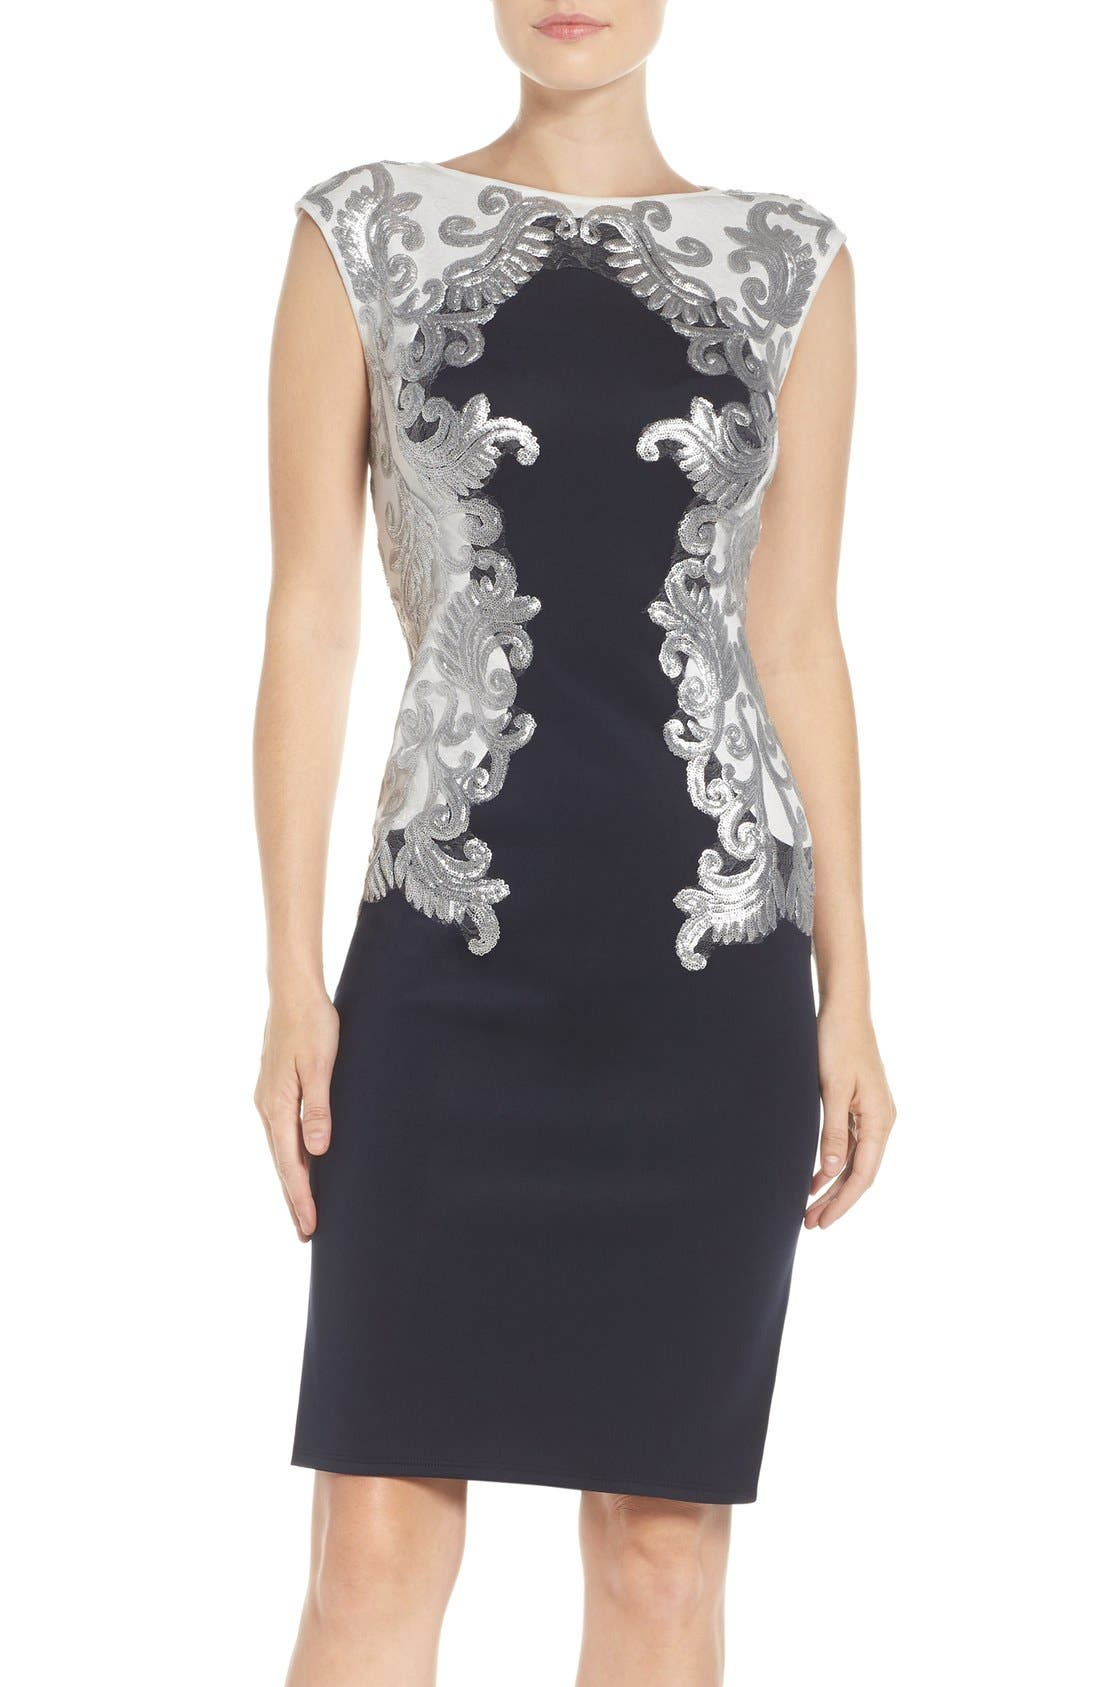 Alternate Image 1 Selected - Tadashi Shoji Sequin Neoprene Dress (Regular & Petite)